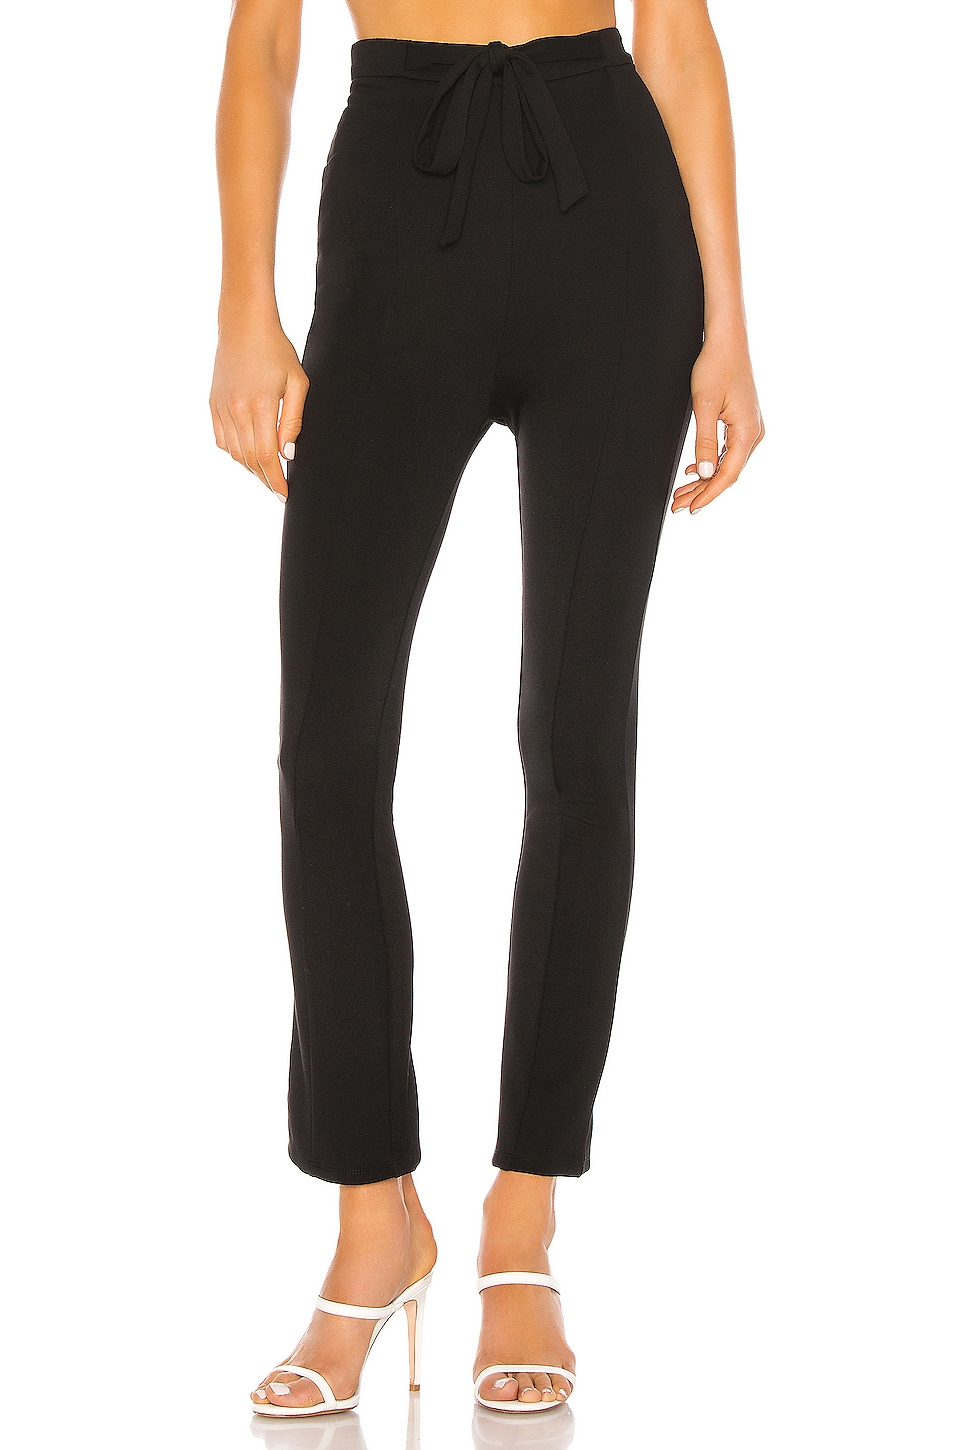 Lovers + Friends Alicia Pants in Black